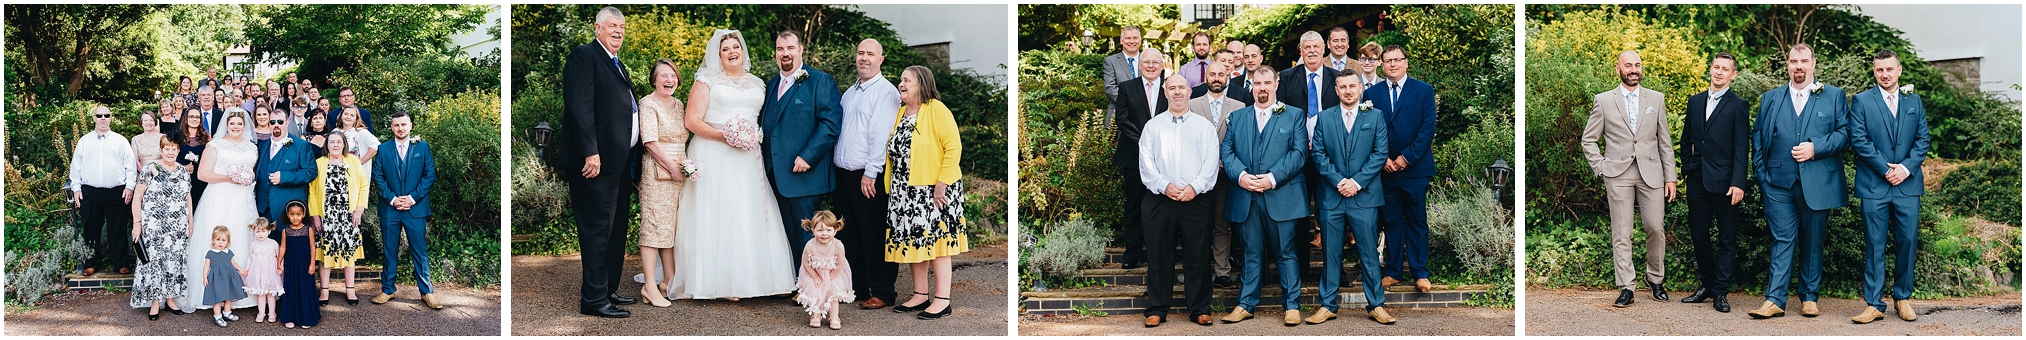 Staffordshire_wedding_photographer-61.jpg